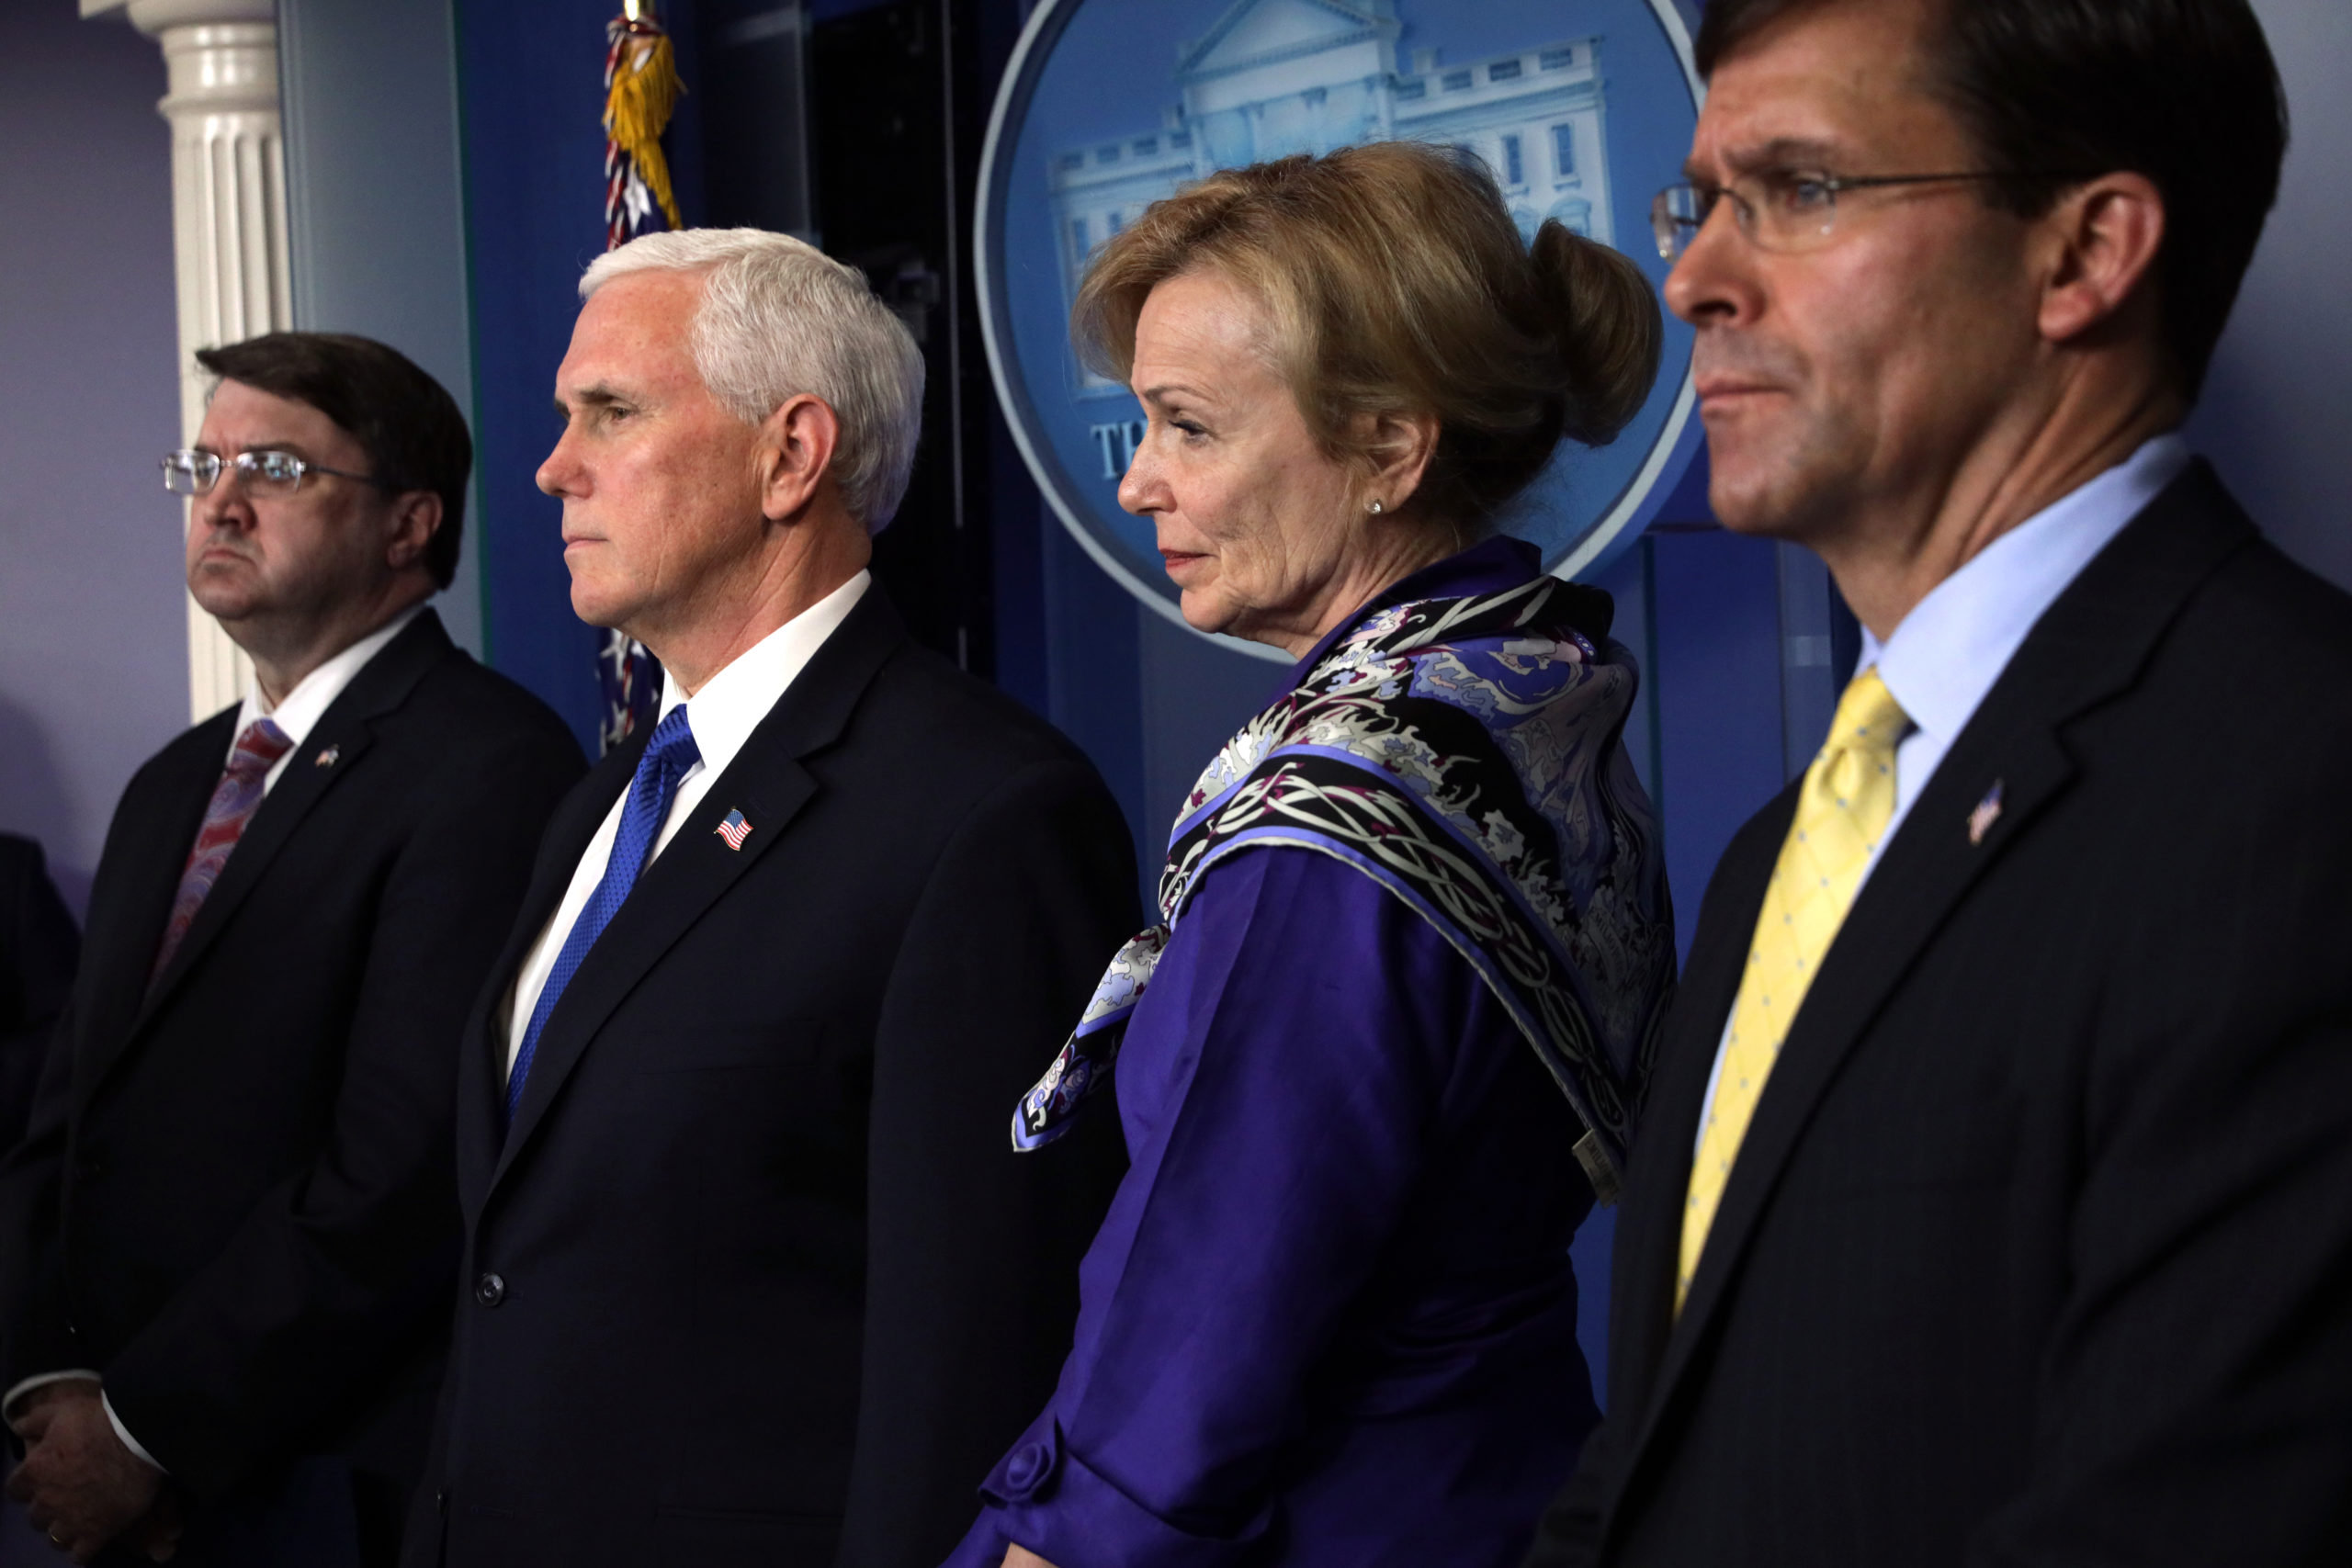 WASHINGTON, DC - MARCH 18: (L-R) U.S. Secretary of Veterans Affairs Robert Wilkie, Vice President Mike Pence, White House Coronavirus Response Coordinator Deborah Birx, and Secretary of Defense Mark Esper listen during a news briefing on the latest development of the coronavirus outbreak in the U.S. at the James Brady Press Briefing Room at the White House March 18, 2020 in Washington, DC. President Trump announced on Twitter that the U.S. and Canada will close their border to non-essential traffic to try and stop the spread of the COVID-19 pandemic. (Photo by Alex Wong/Getty Images)